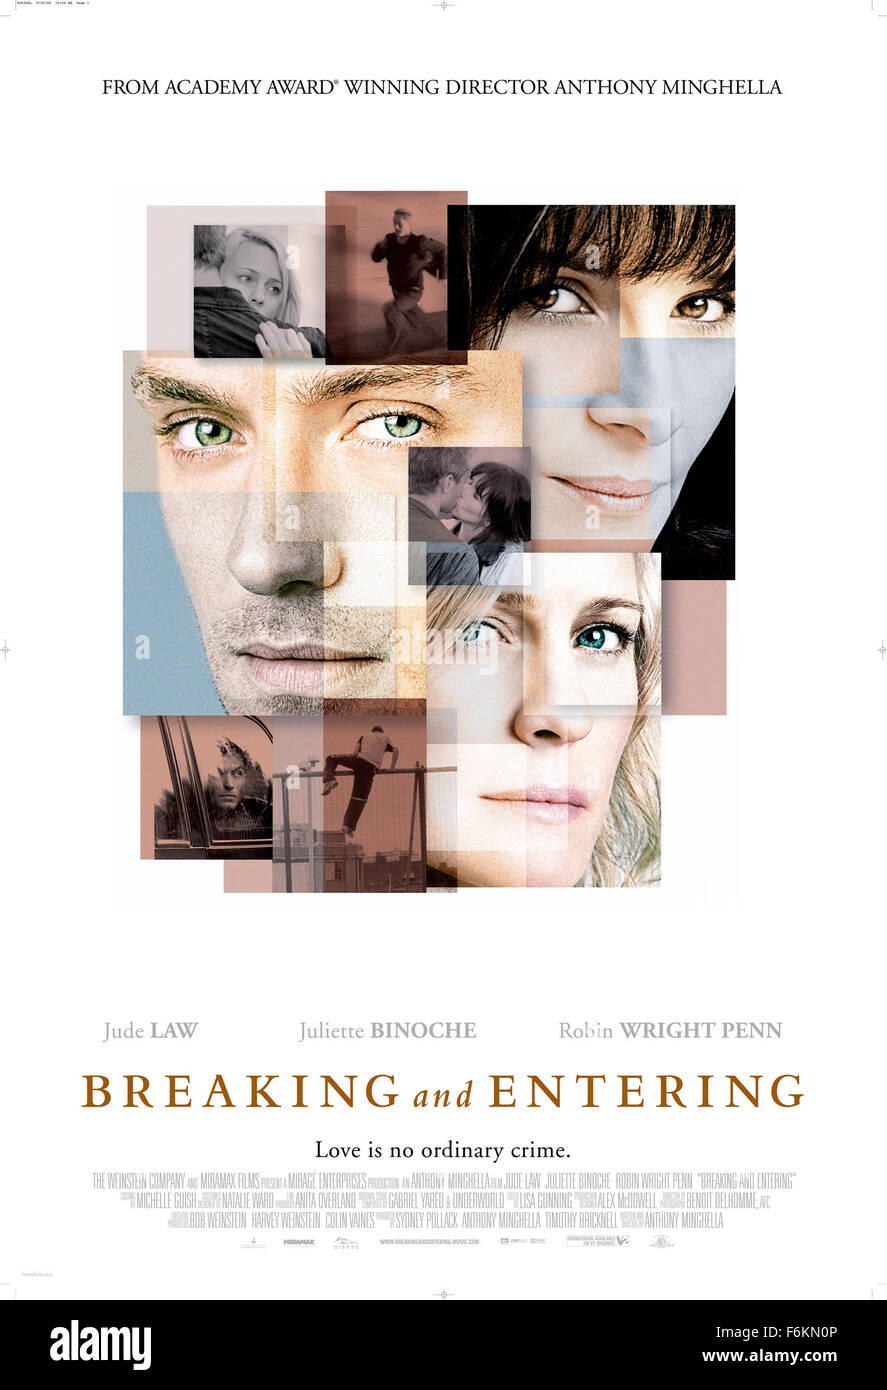 RELEASE DATE: January 26, 2007. MOVIE TITLE: Breaking and Entering - STUDIO: Miramax Films. PLOT: A Landscape Architect's - Stock Image